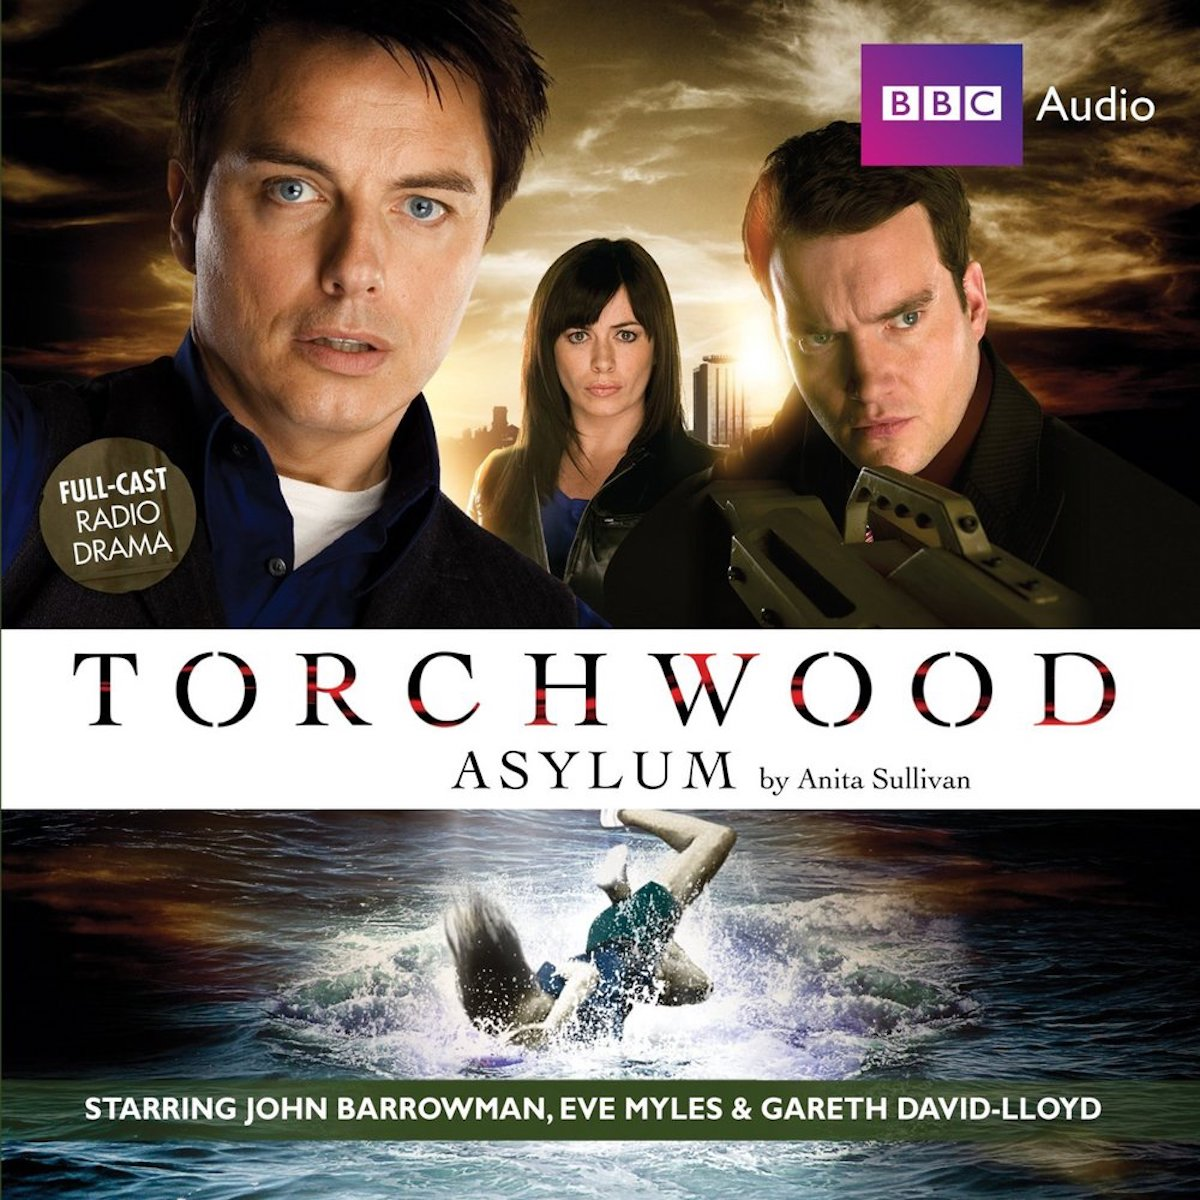 Torchwood Asylum